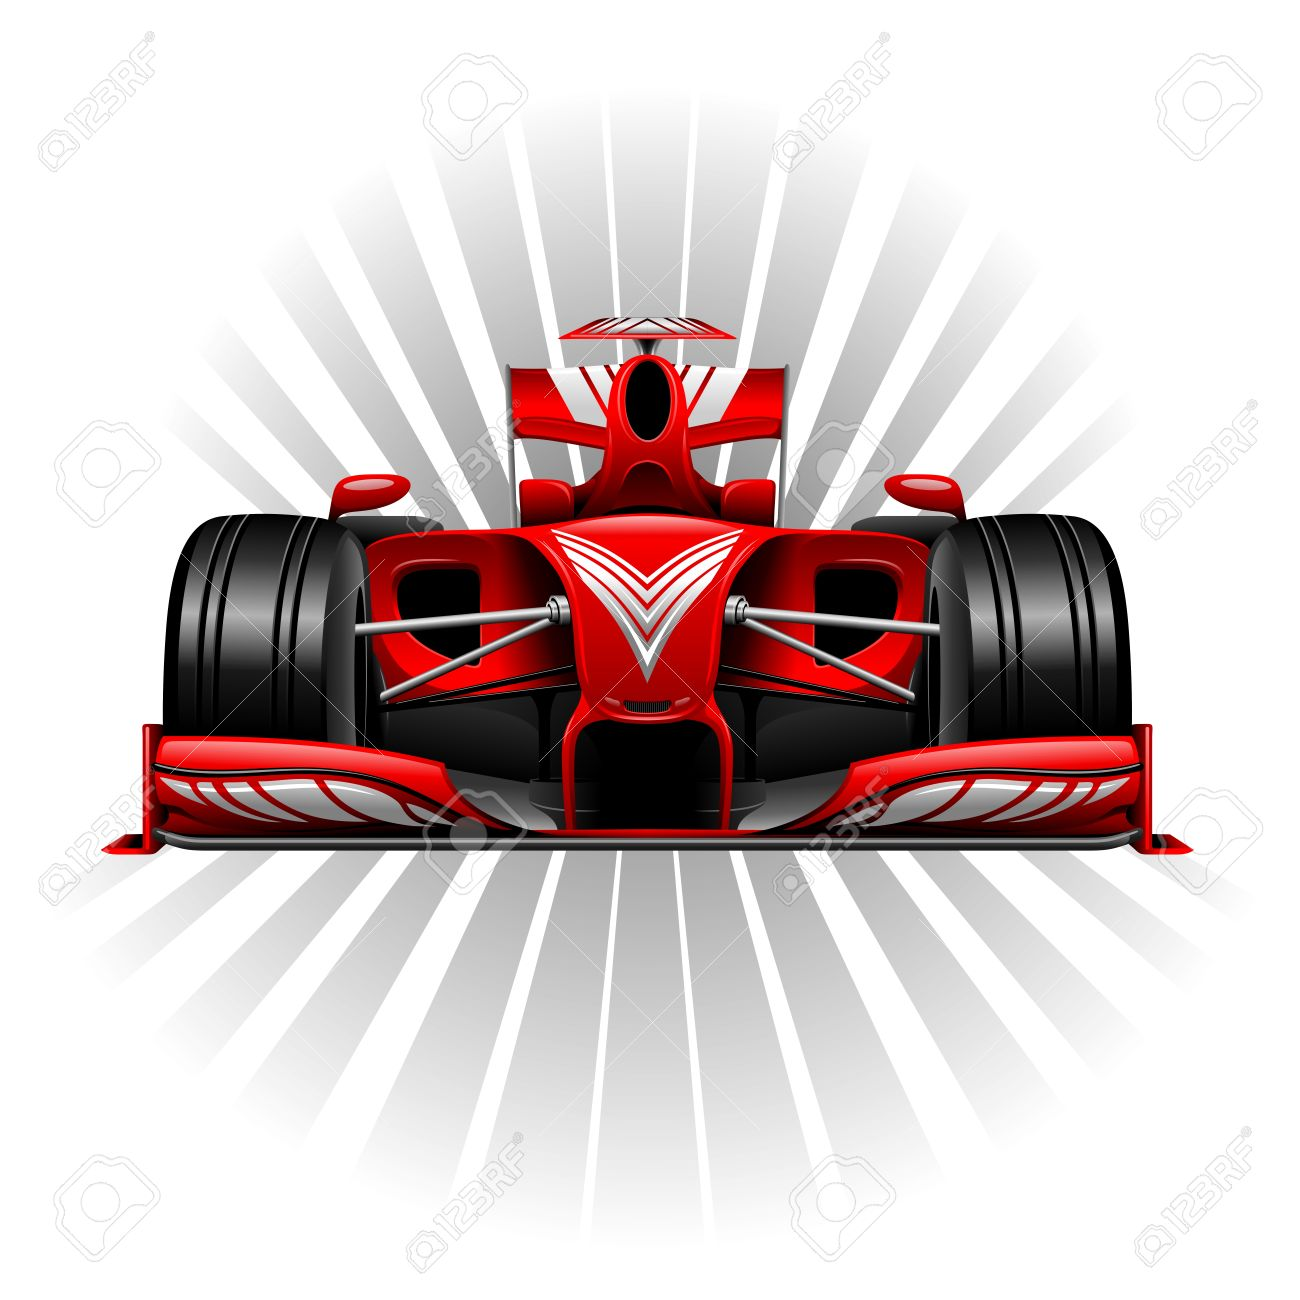 Formula 1 Red Racing Car Stock Vector - 30231084